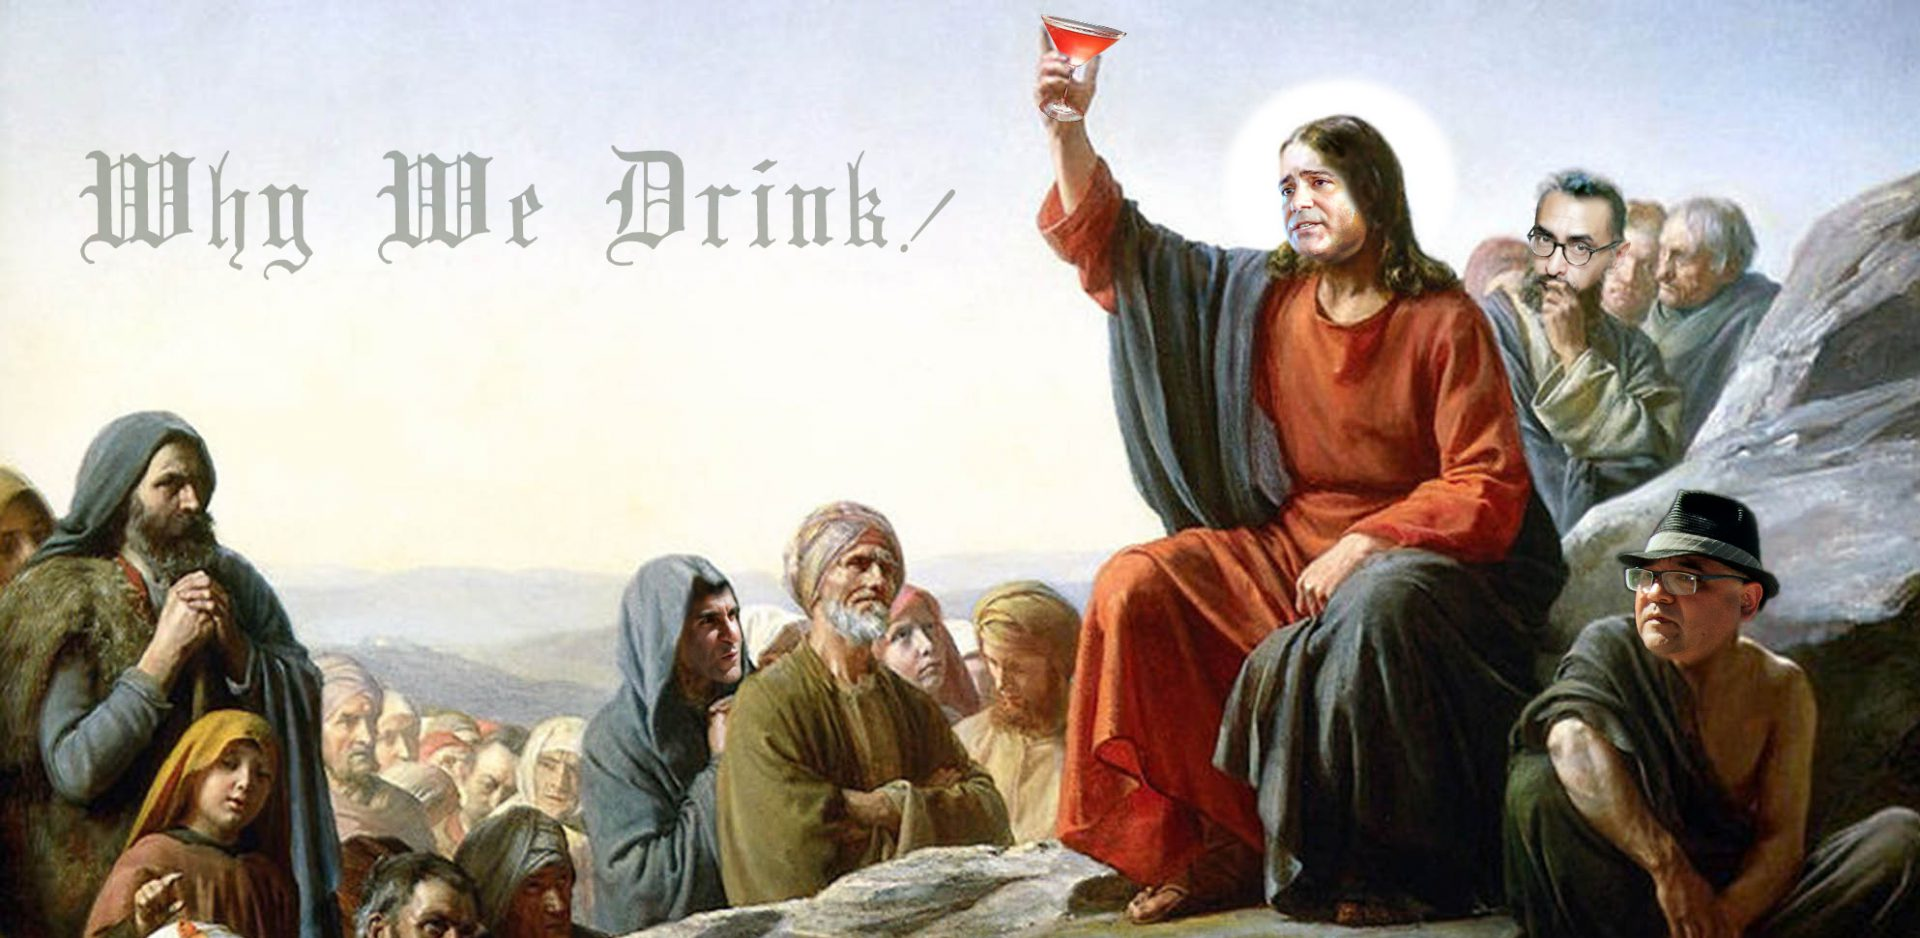 Why We Drink!